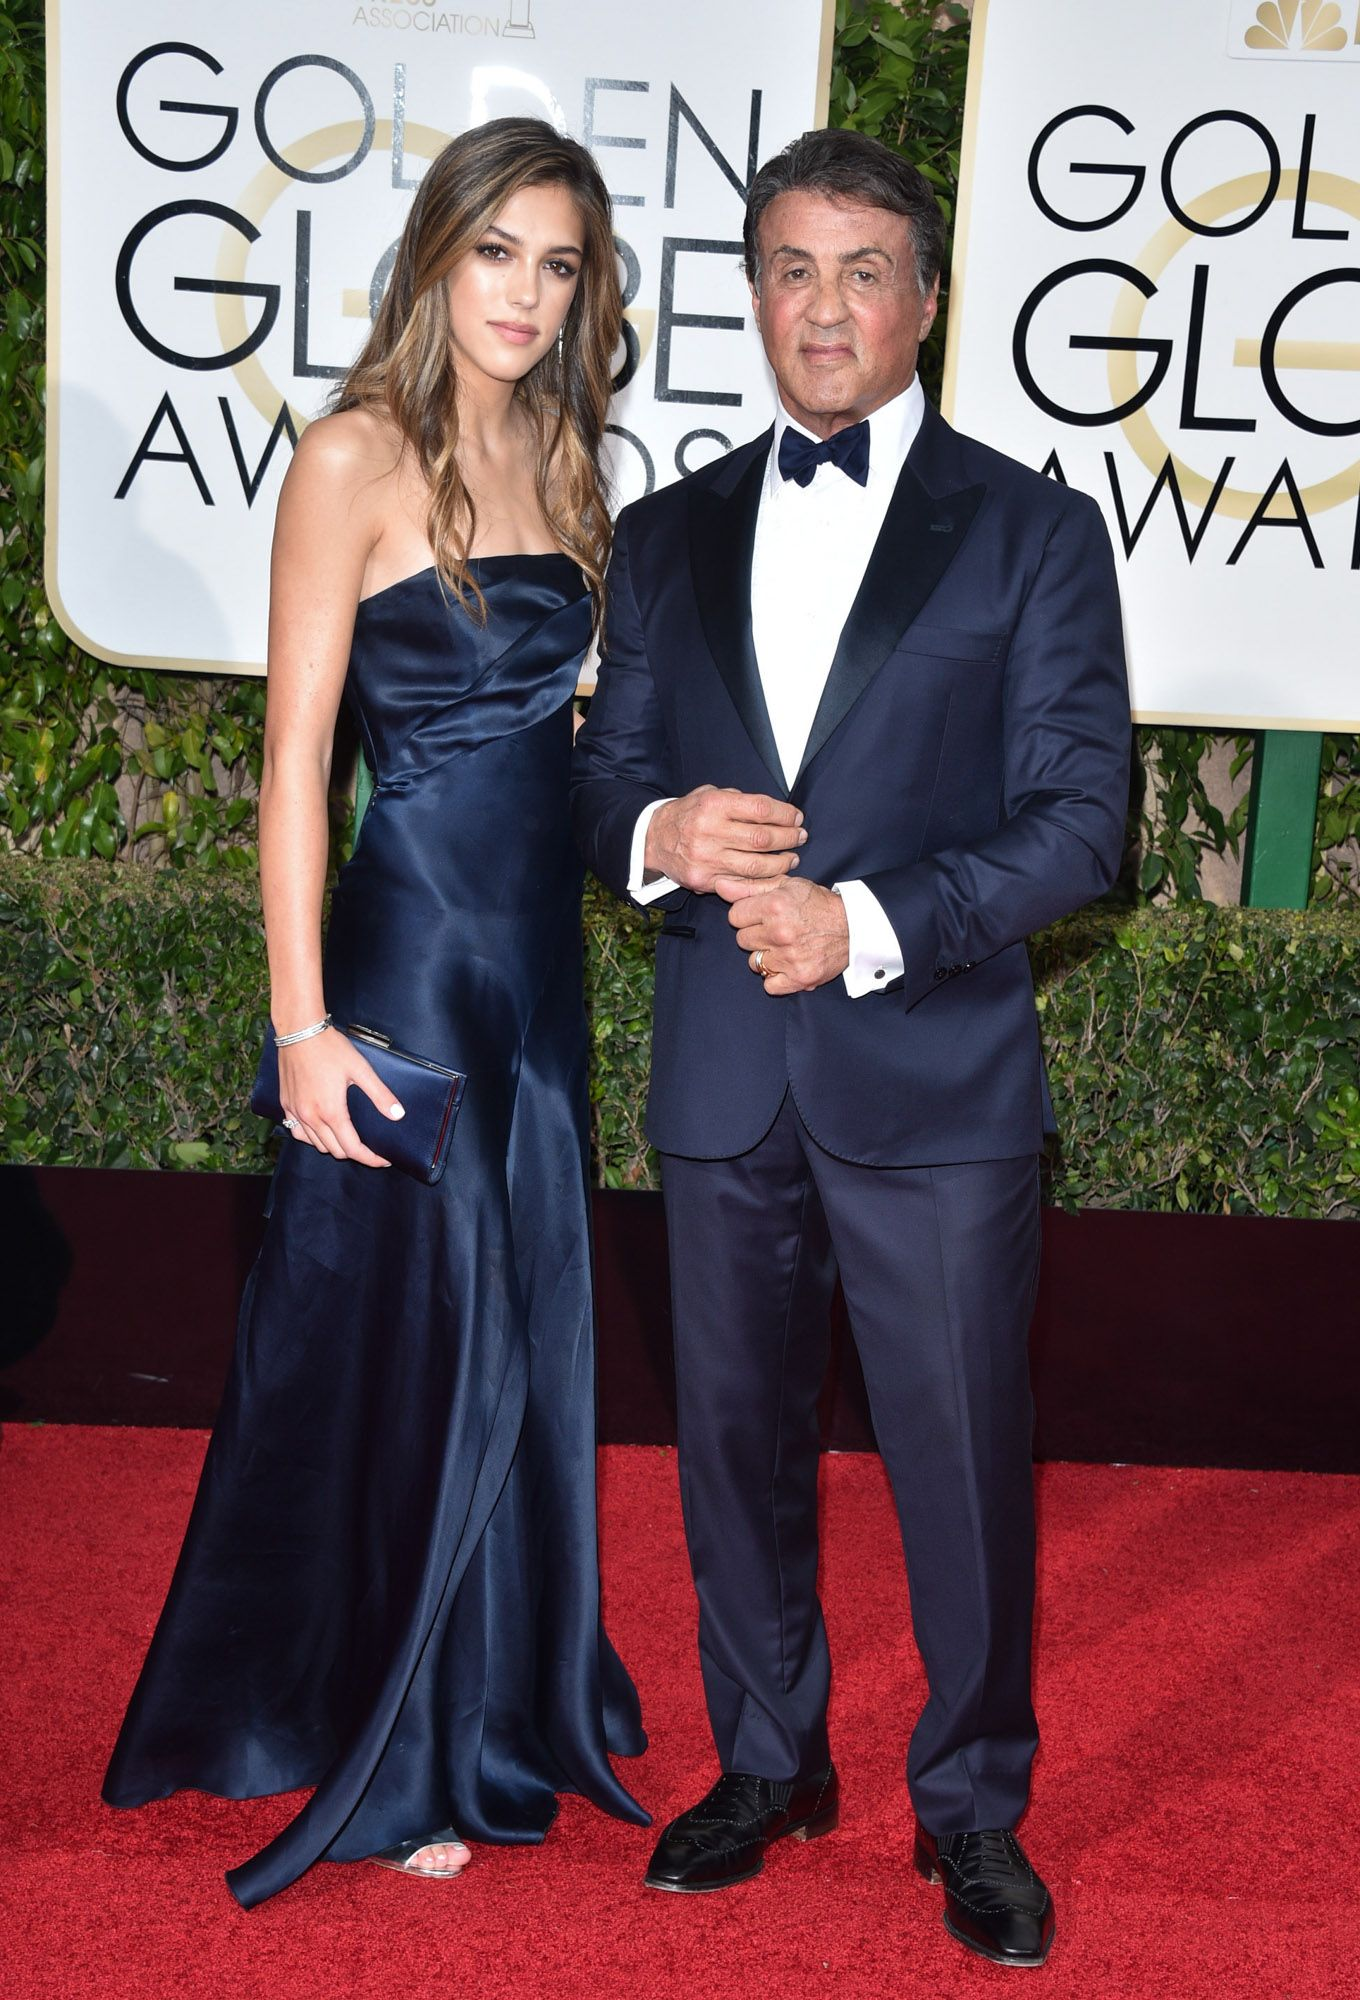 Scarlet Stallone and Sylvester Stallone at the 73rd Annual Golden Globe Awards held at The Beverly Hilton Hotel on January 10, 2016 in Beverly Hills, California.   Photo: Getty Images